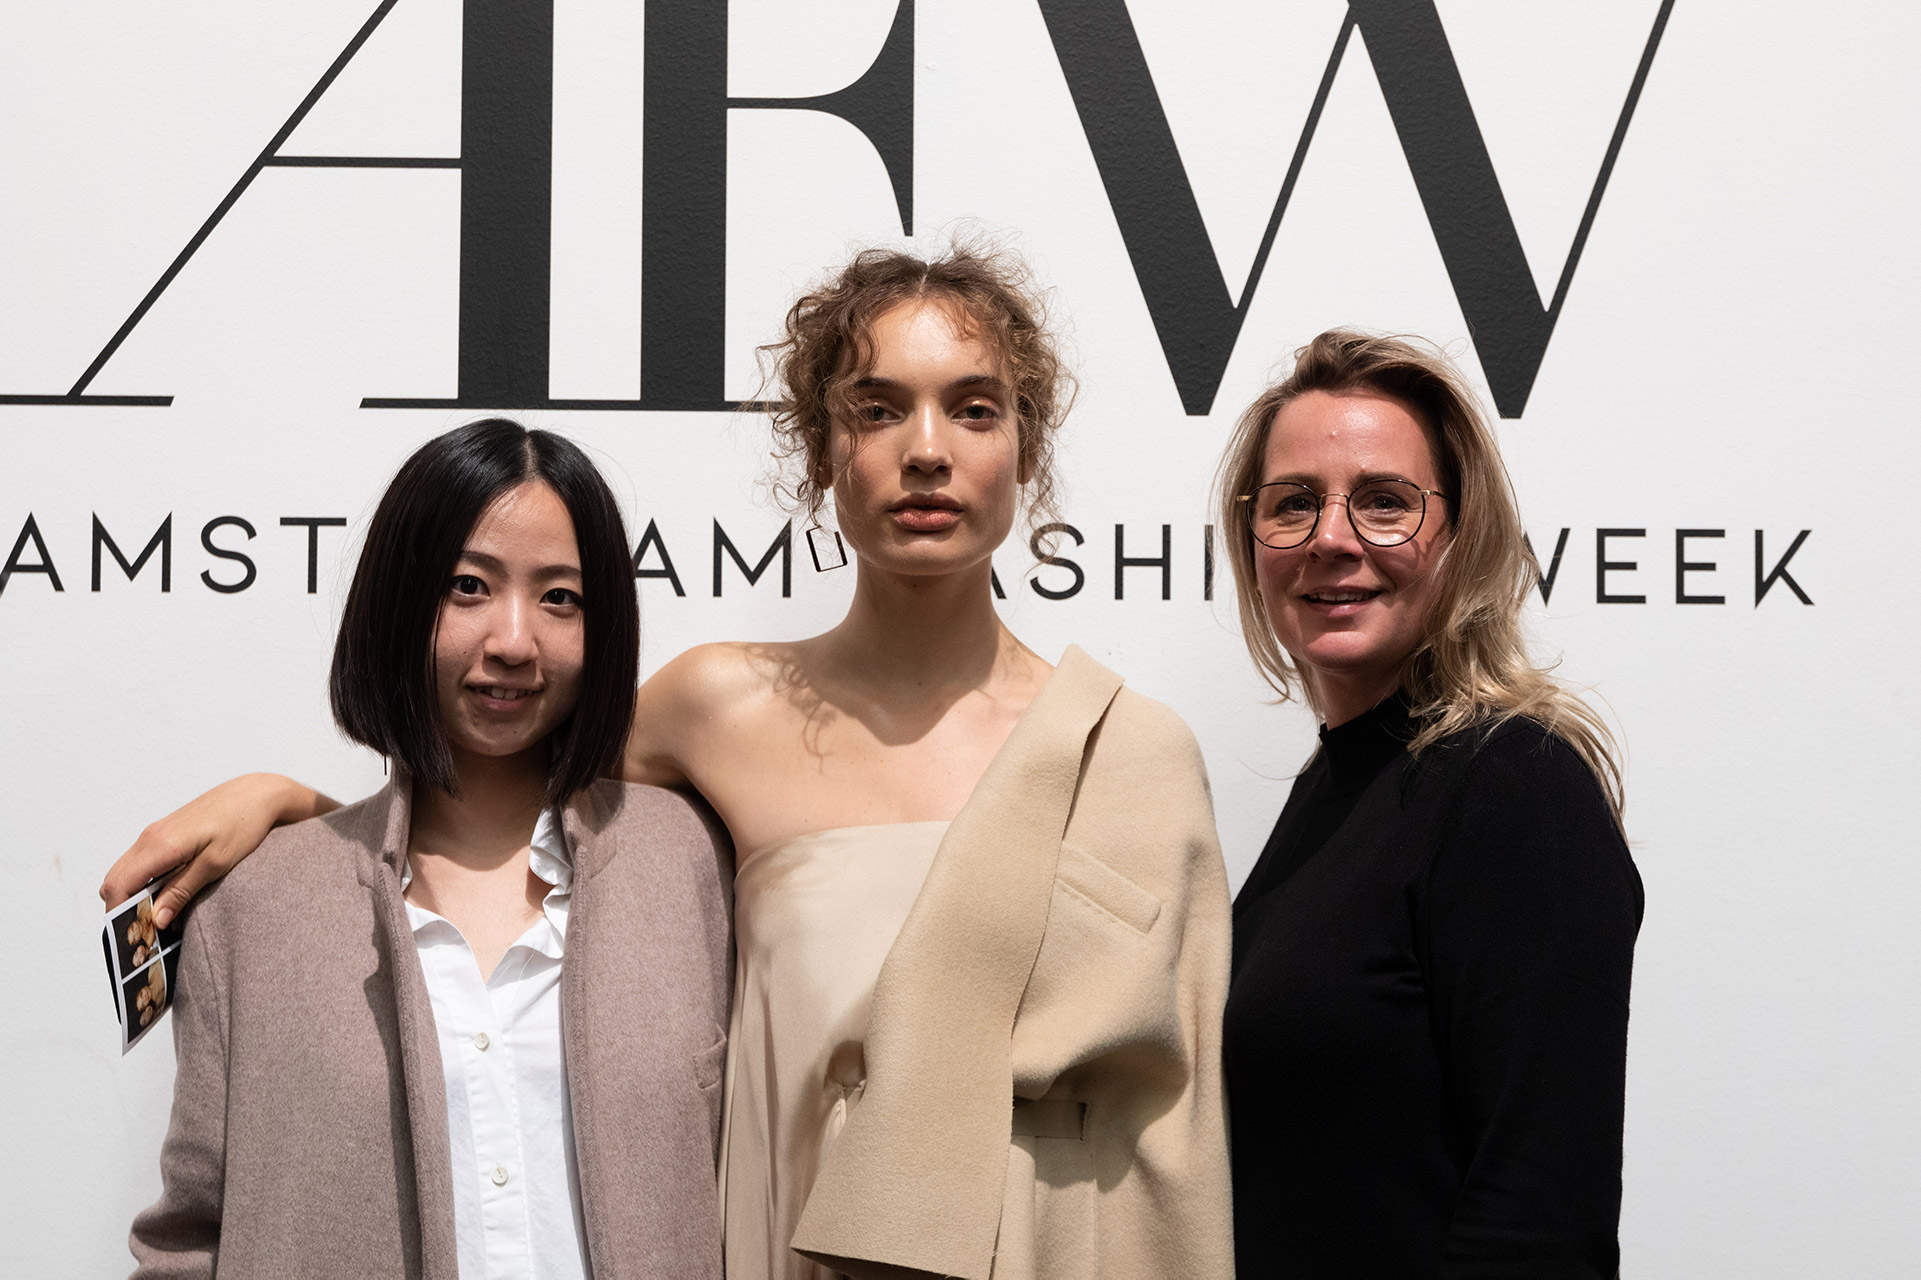 Heidi-Dai-Lidle-Amsterdam-Fashion-Week-2018